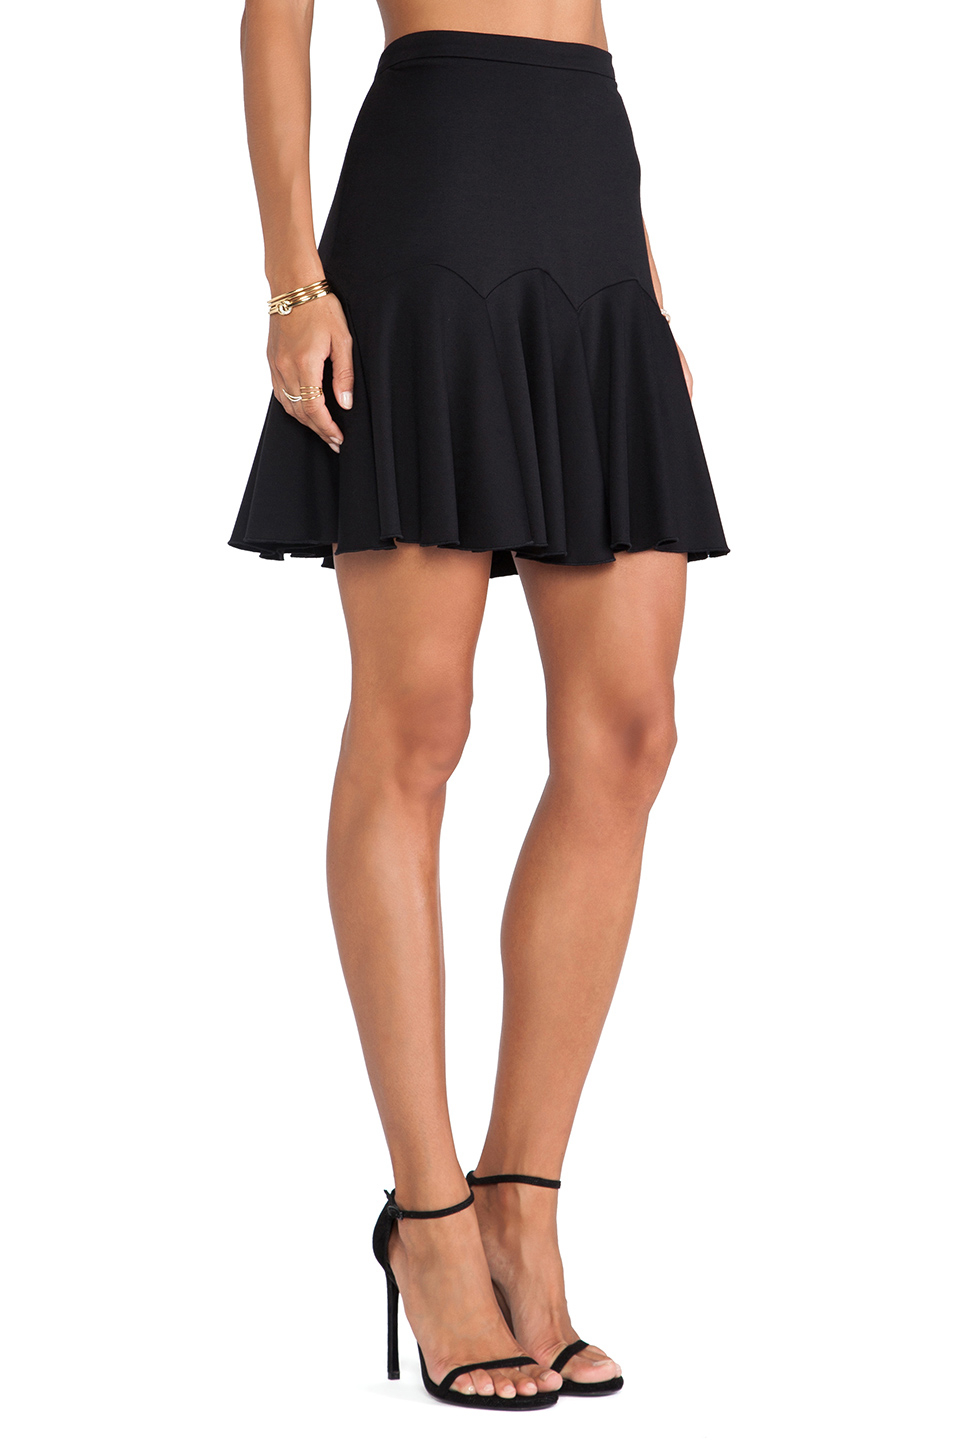 Find great deals on eBay for black fit and flare skirt. Shop with confidence.